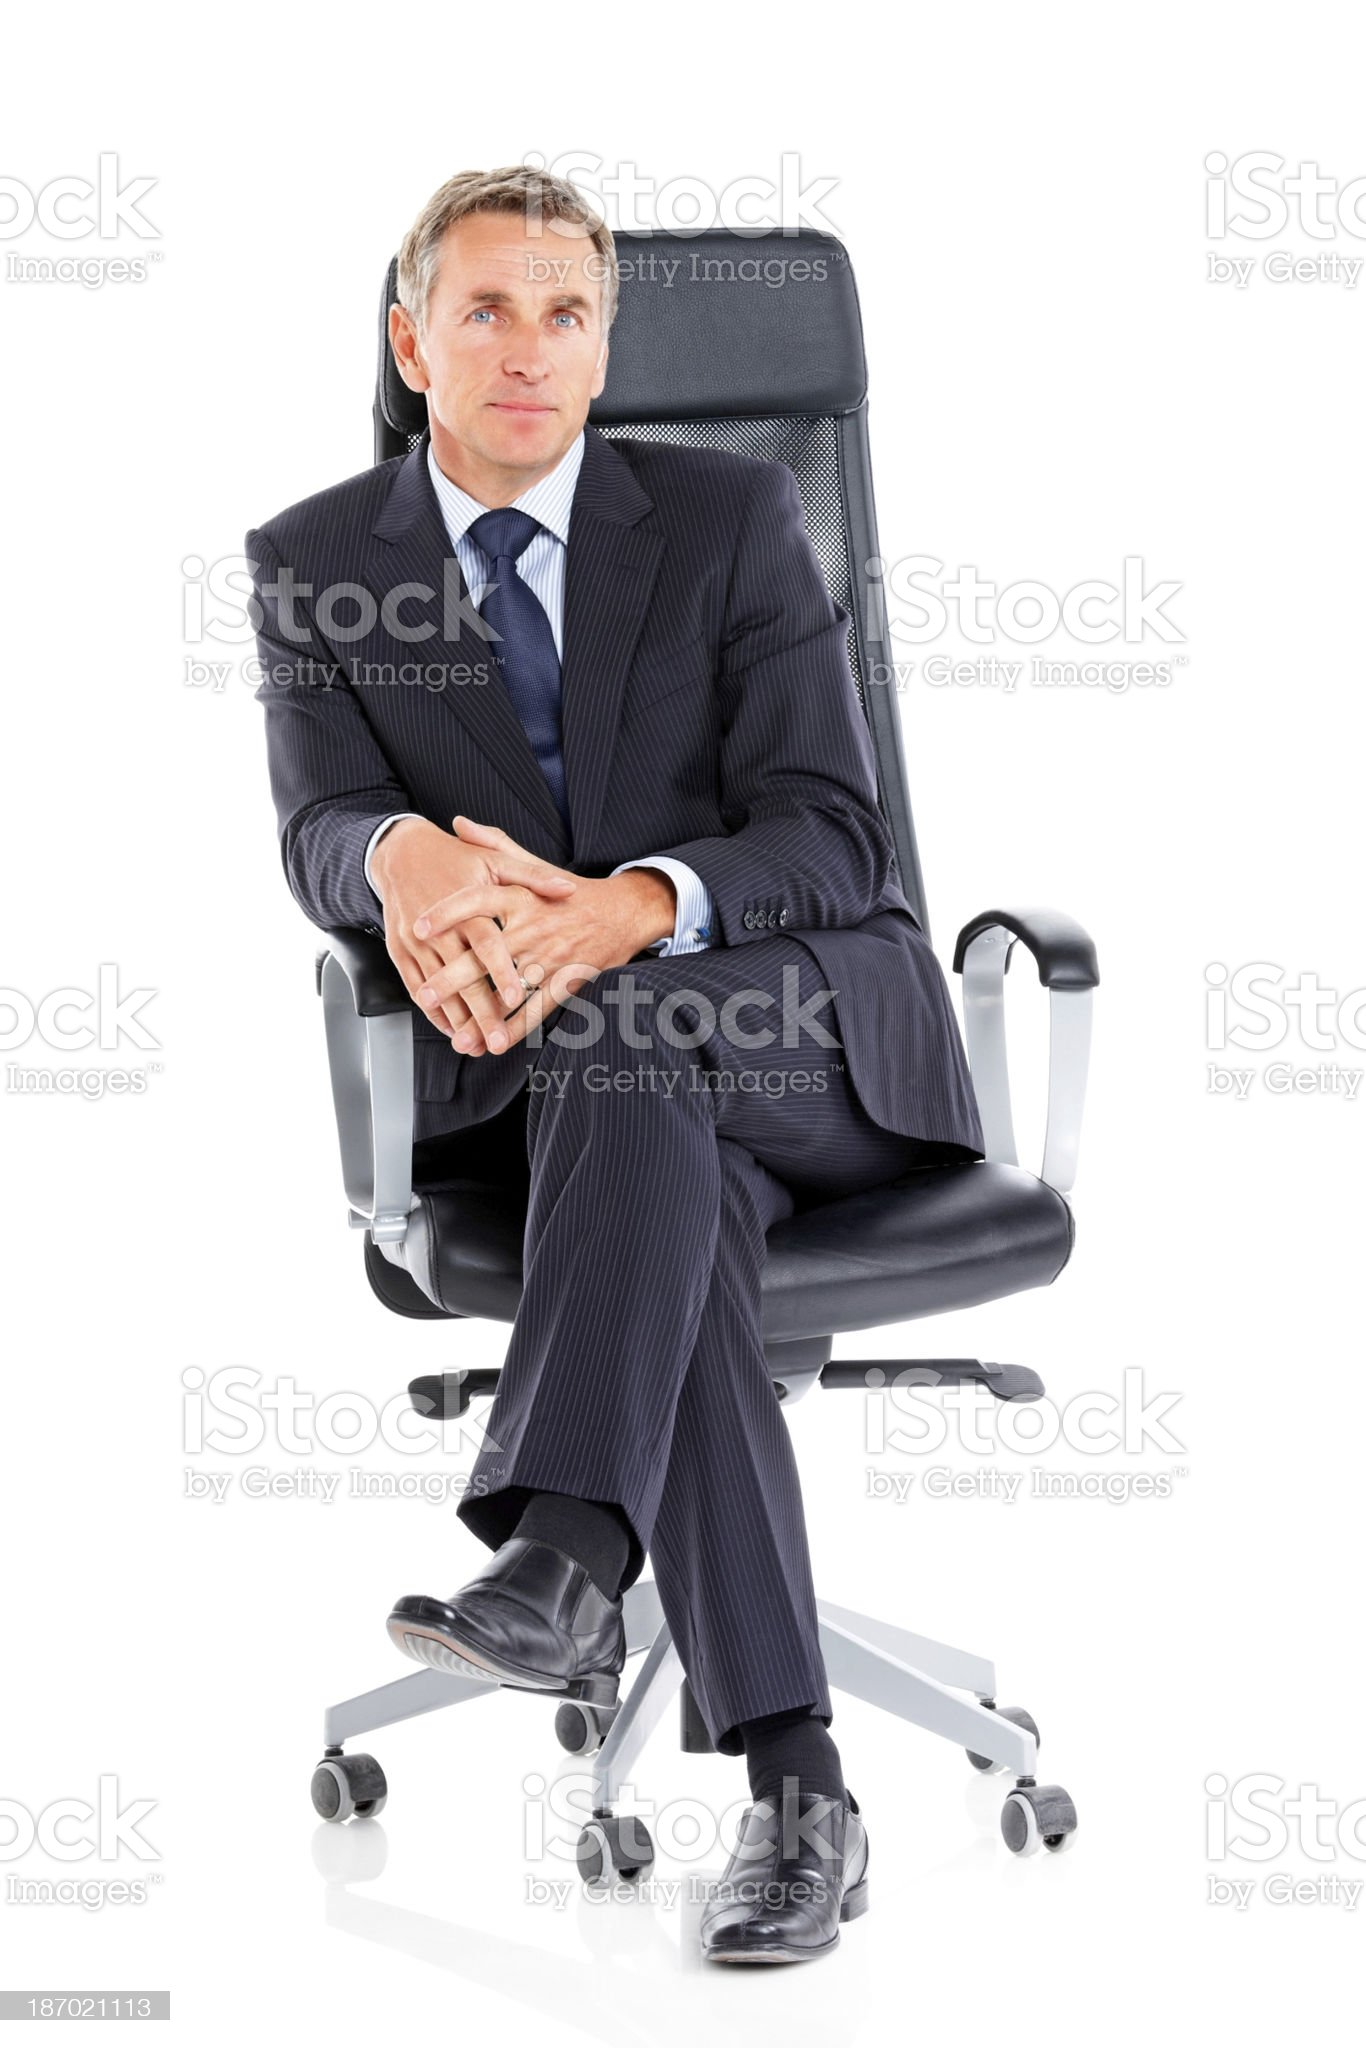 Confident mature businessman sitting on office chair royalty-free stock photo